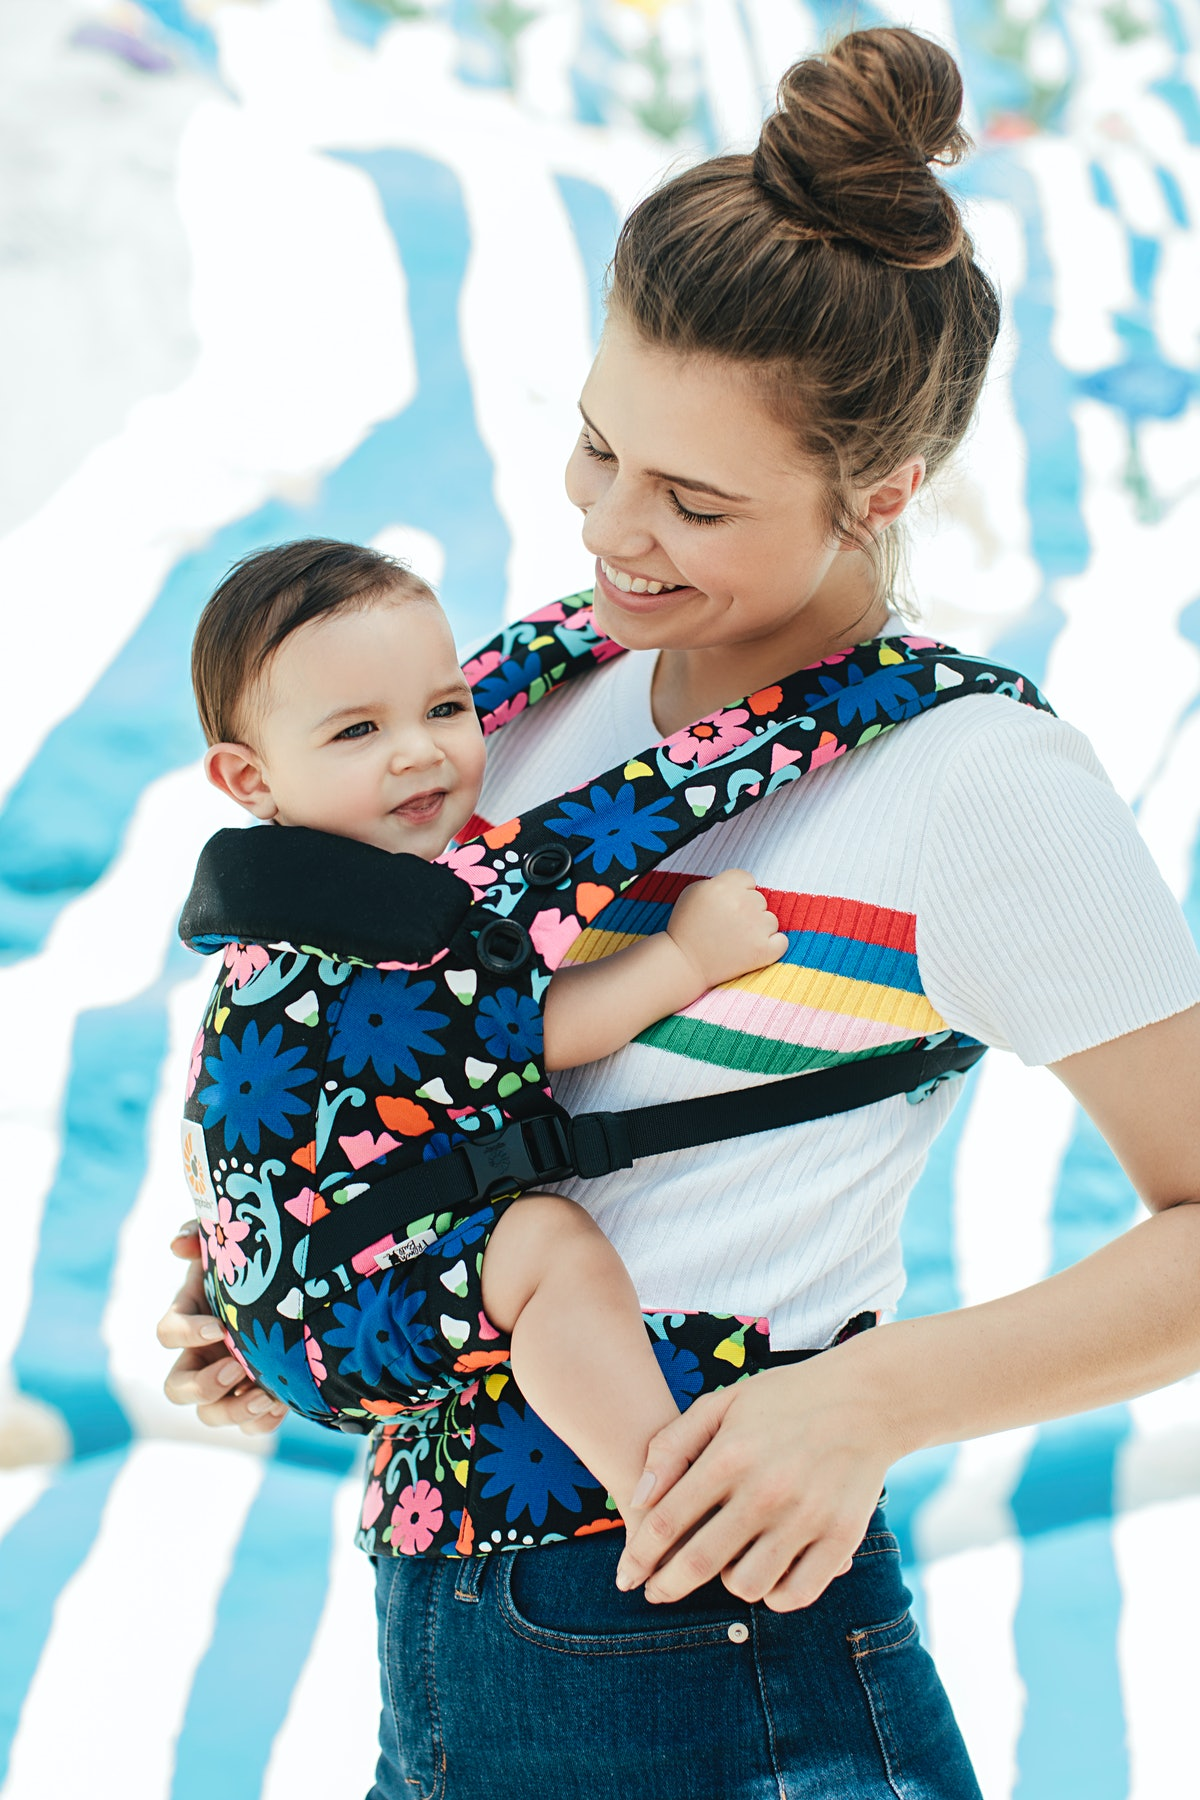 The Ergobaby French Bull Collection Is Turning Babywearing Into An Actual Art